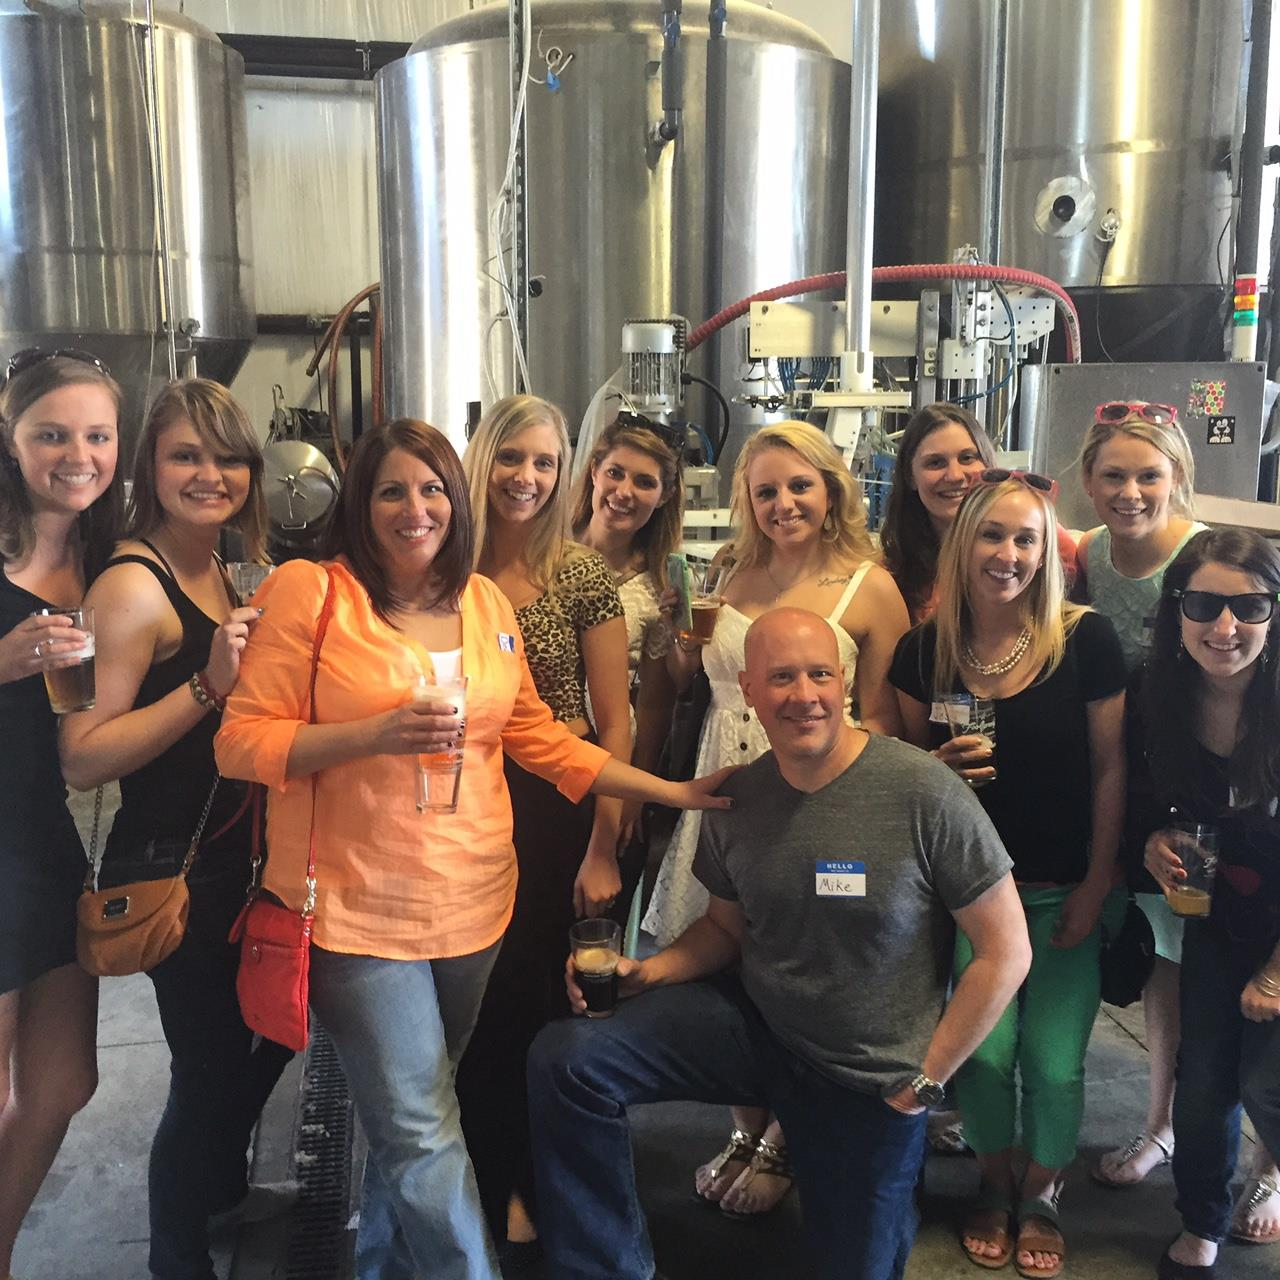 beers, brewery tour, and conversation! that's how you meet people in providence